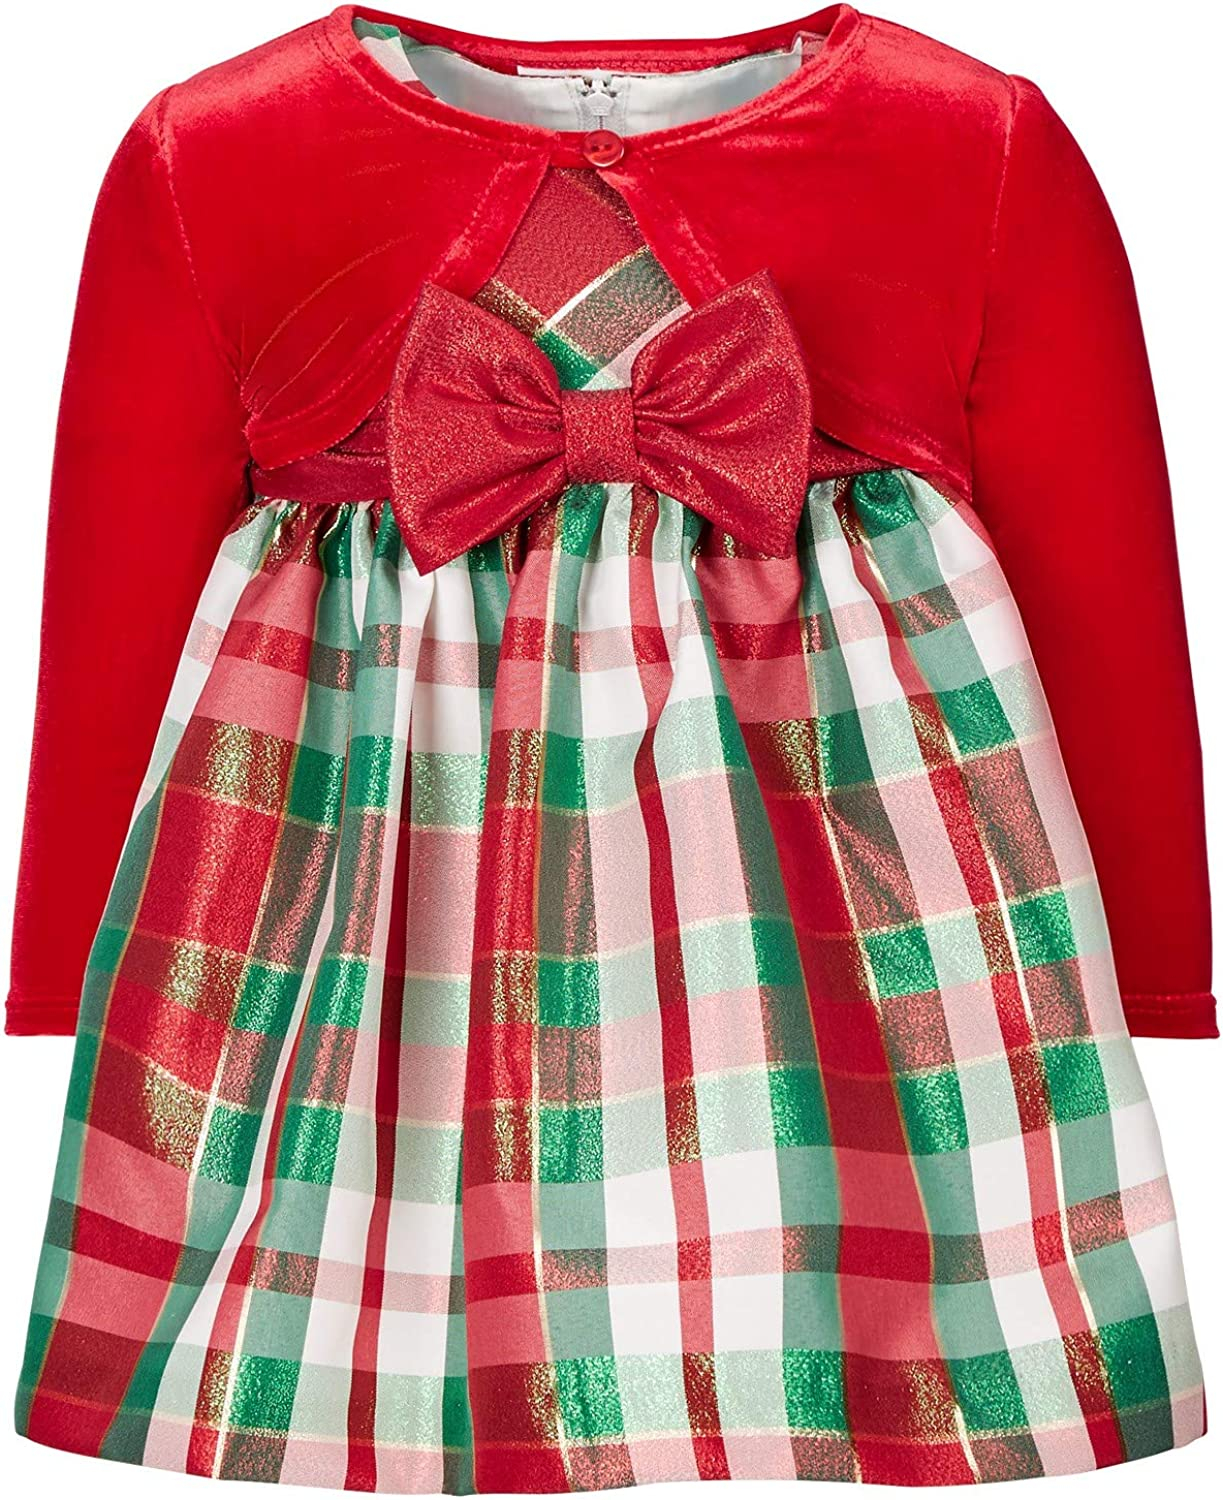 Bonnie Jean Baby Girl's Holiday Christmas Dress - Plaid with Red Velvet Cardigan (24 Months): Clothing, Shoes & Jewelry